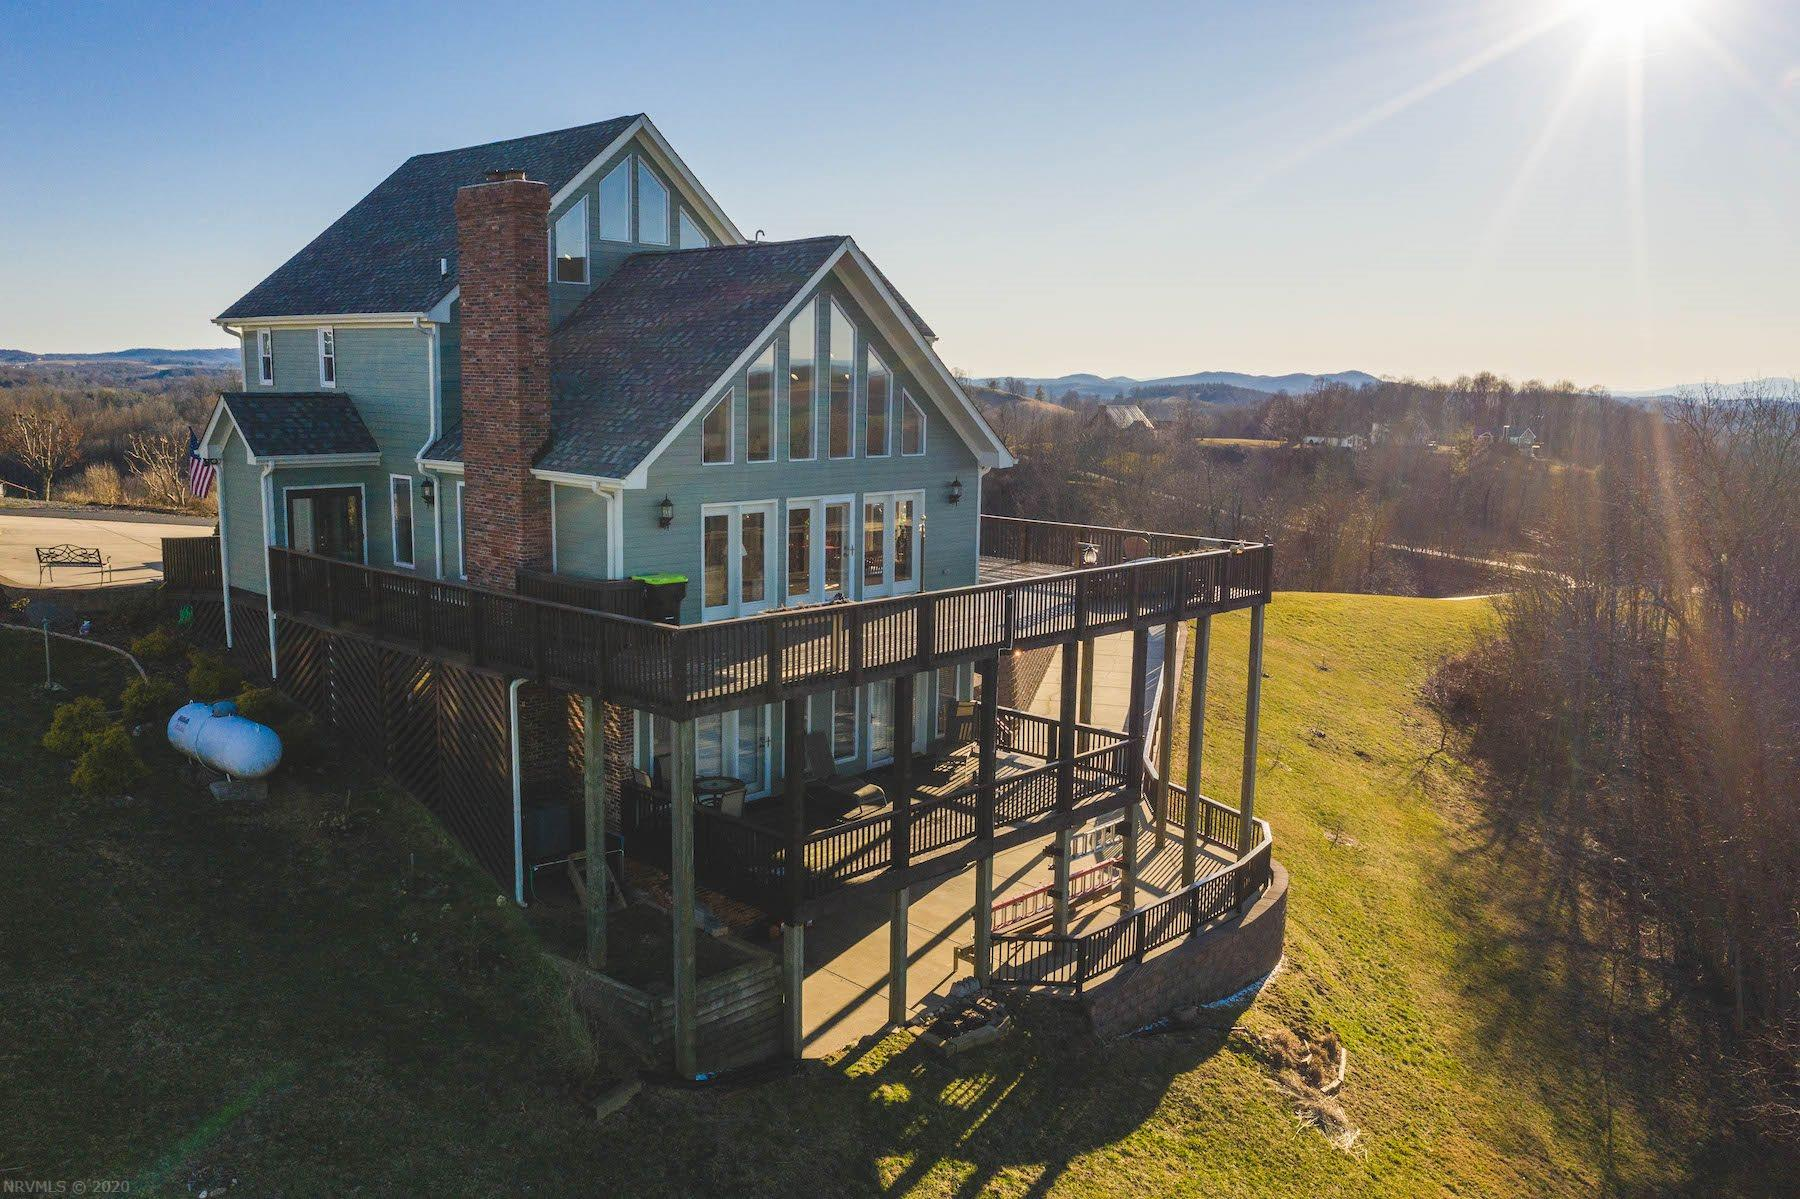 Beautiful Contemporary A-Frame home located in Hillsville VA! This stunning 5 bedroom 3.5 bath home is surrounded by a breathtaking 360 degree mountain view! The home offers modern-style living with hardwood flooring, stainless steel appliances and granite countertops.  The large picture windows provide great views of the surrounding mountain ranges.  Each bedroom is a great size providing plenty of space for family or visiting loved ones.  The attached single car garage is perfect for storage space and convenient parking.  The patio area on the main level is the perfect area to enjoy the company of family and/or friends as well as the spacious decks. This home offers million dollar views and modern-style living suitable for everyone.